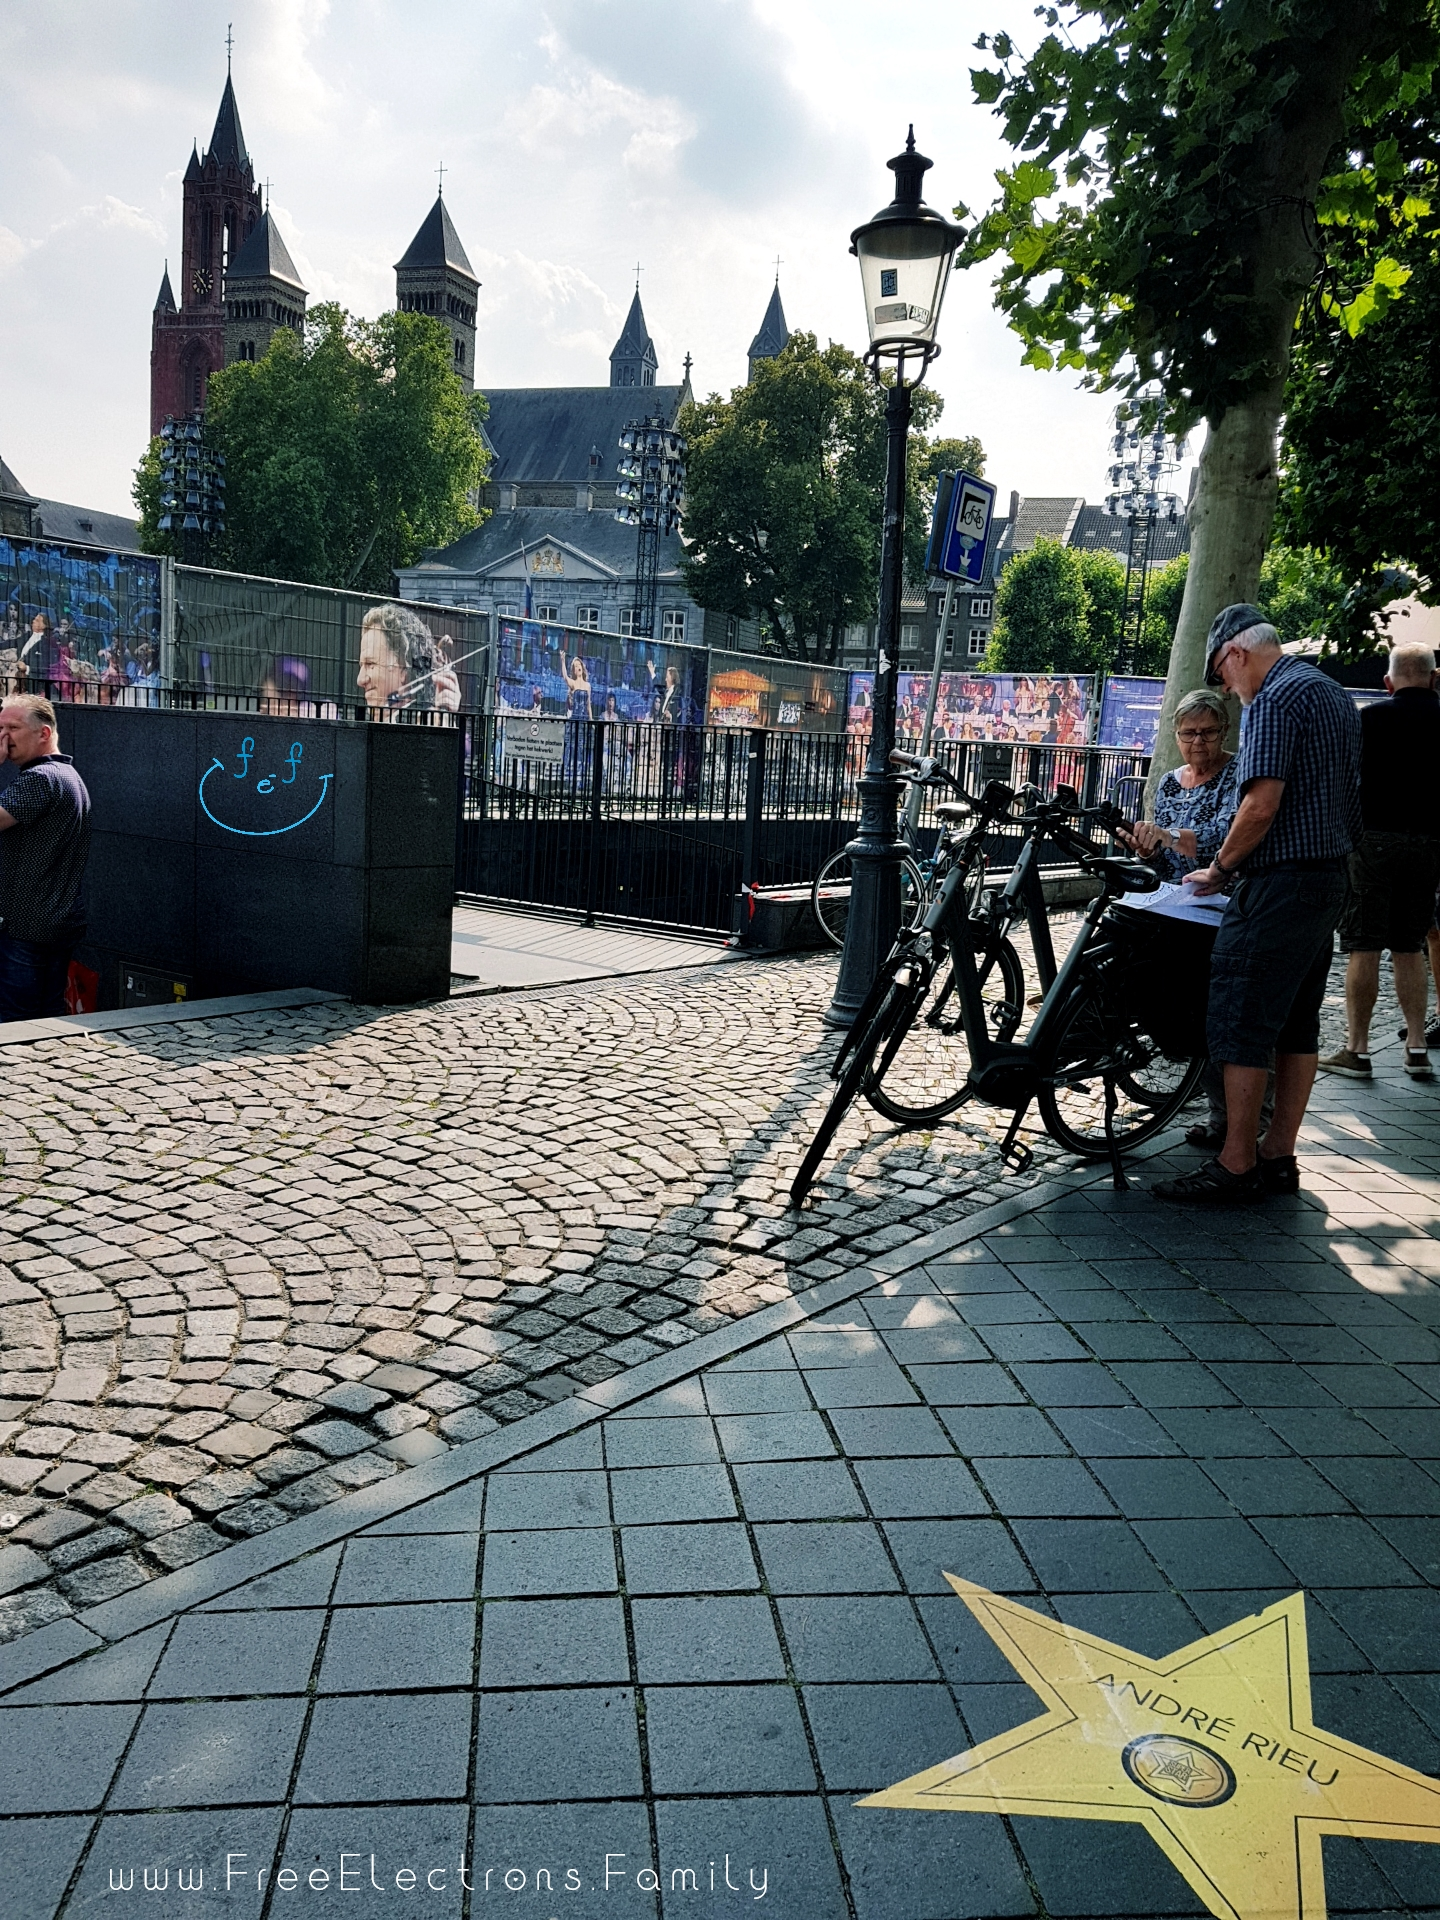 Maastricht, the city of Andre Rieu.  Pictures of the composer in the background in preparation for a concert.  A star on the street with the musicians name imprinted on it.  #FreeElectrons.Family - camping road trip Europe Maastricht